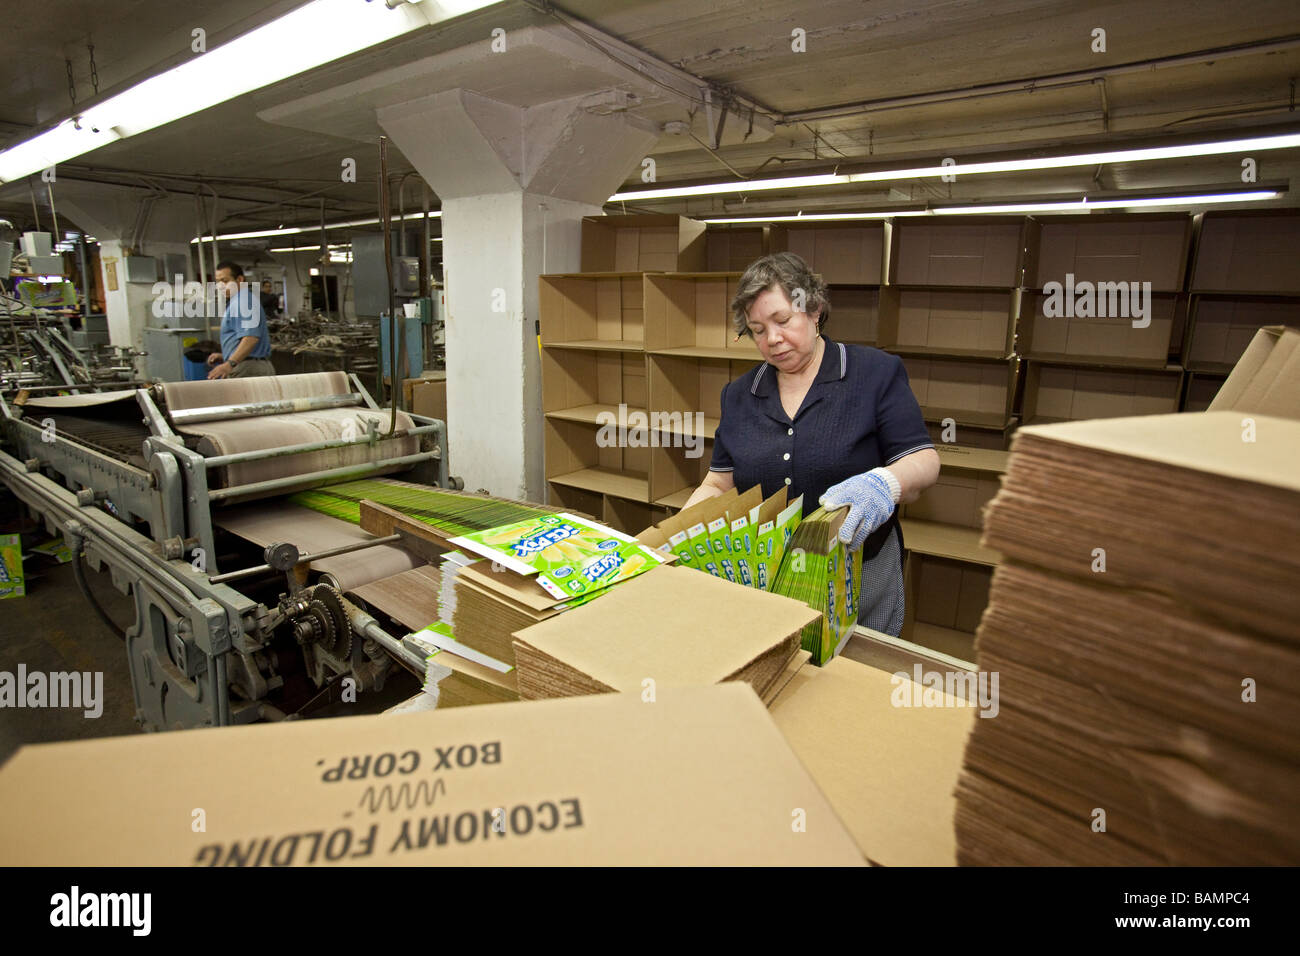 Workers Make Boxes for Retail Products - Stock Image